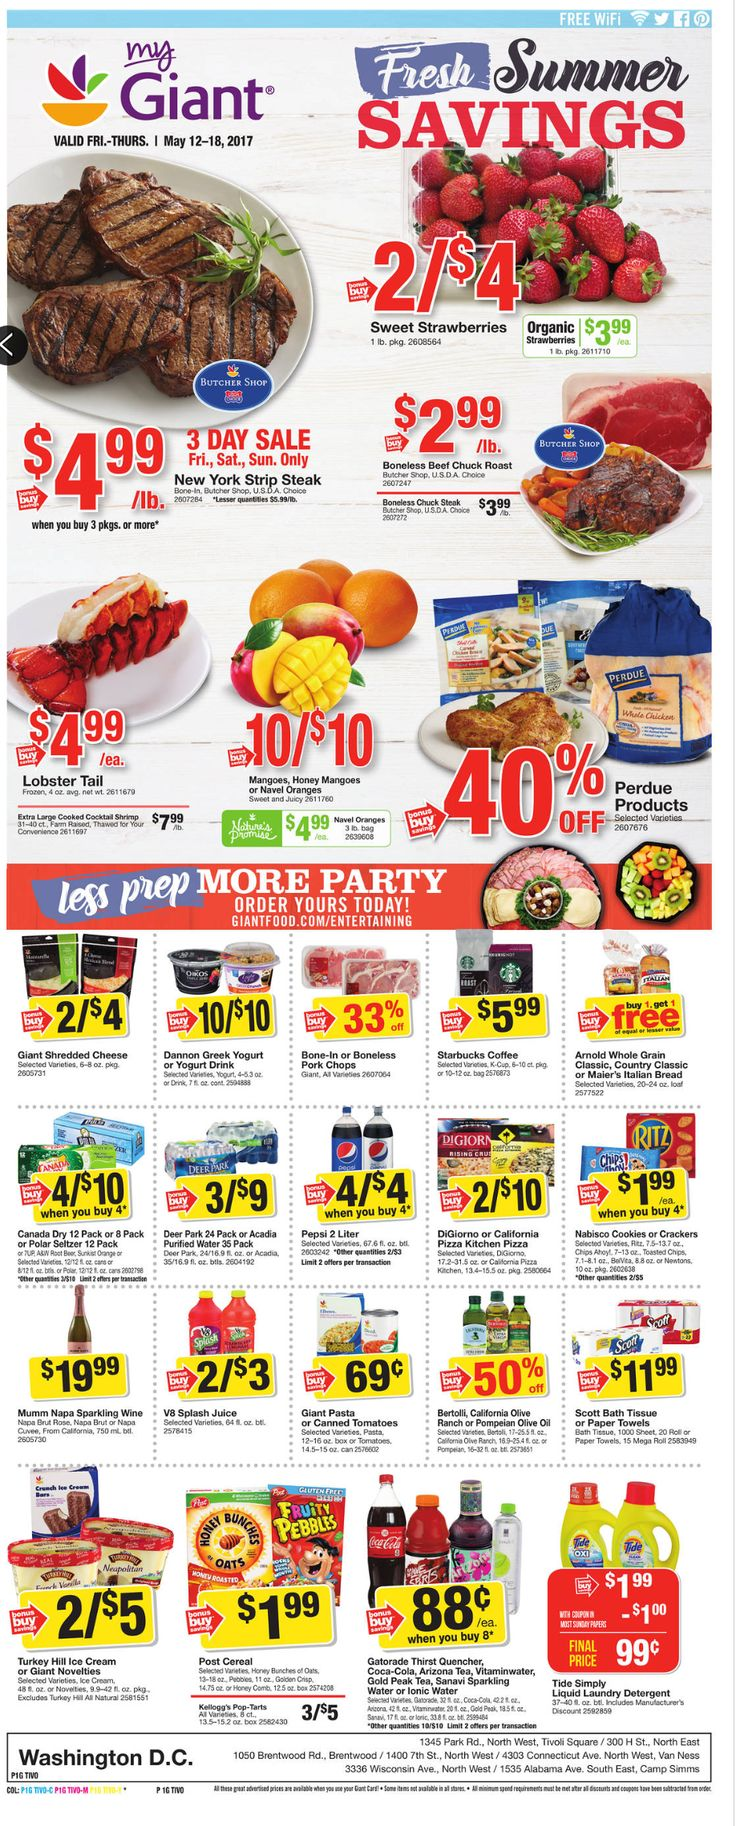 Giant Food Weekly Ad May 12 - 18, 2017 - http://www.olcatalog.com/grocery/giant-food-weekly-ad.html